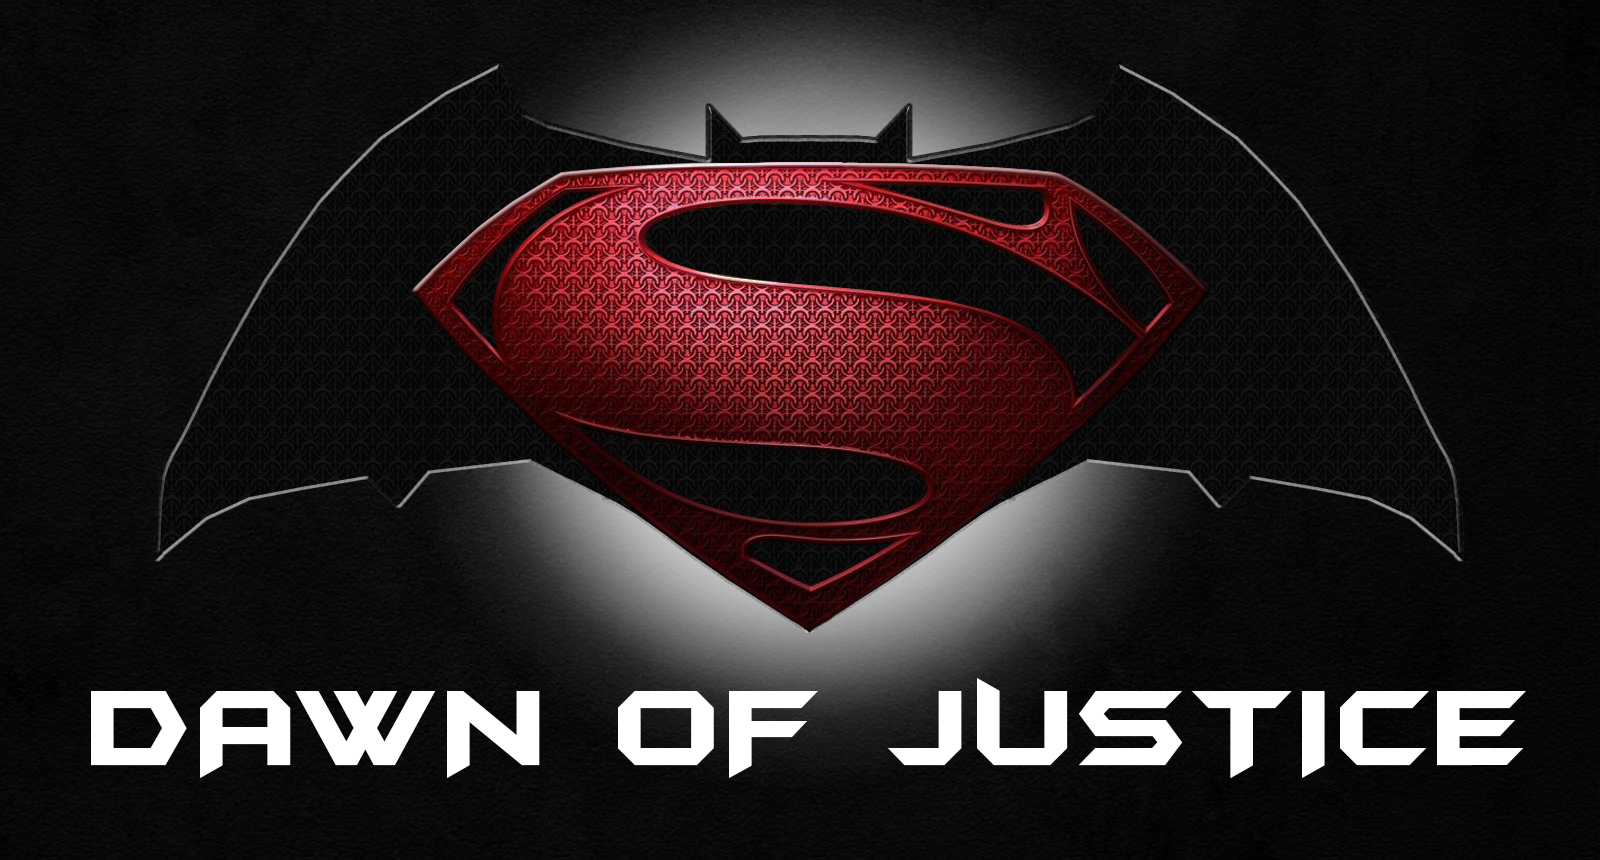 Batman Vs Superman – dawn of Justice full hd photo Wallpaper